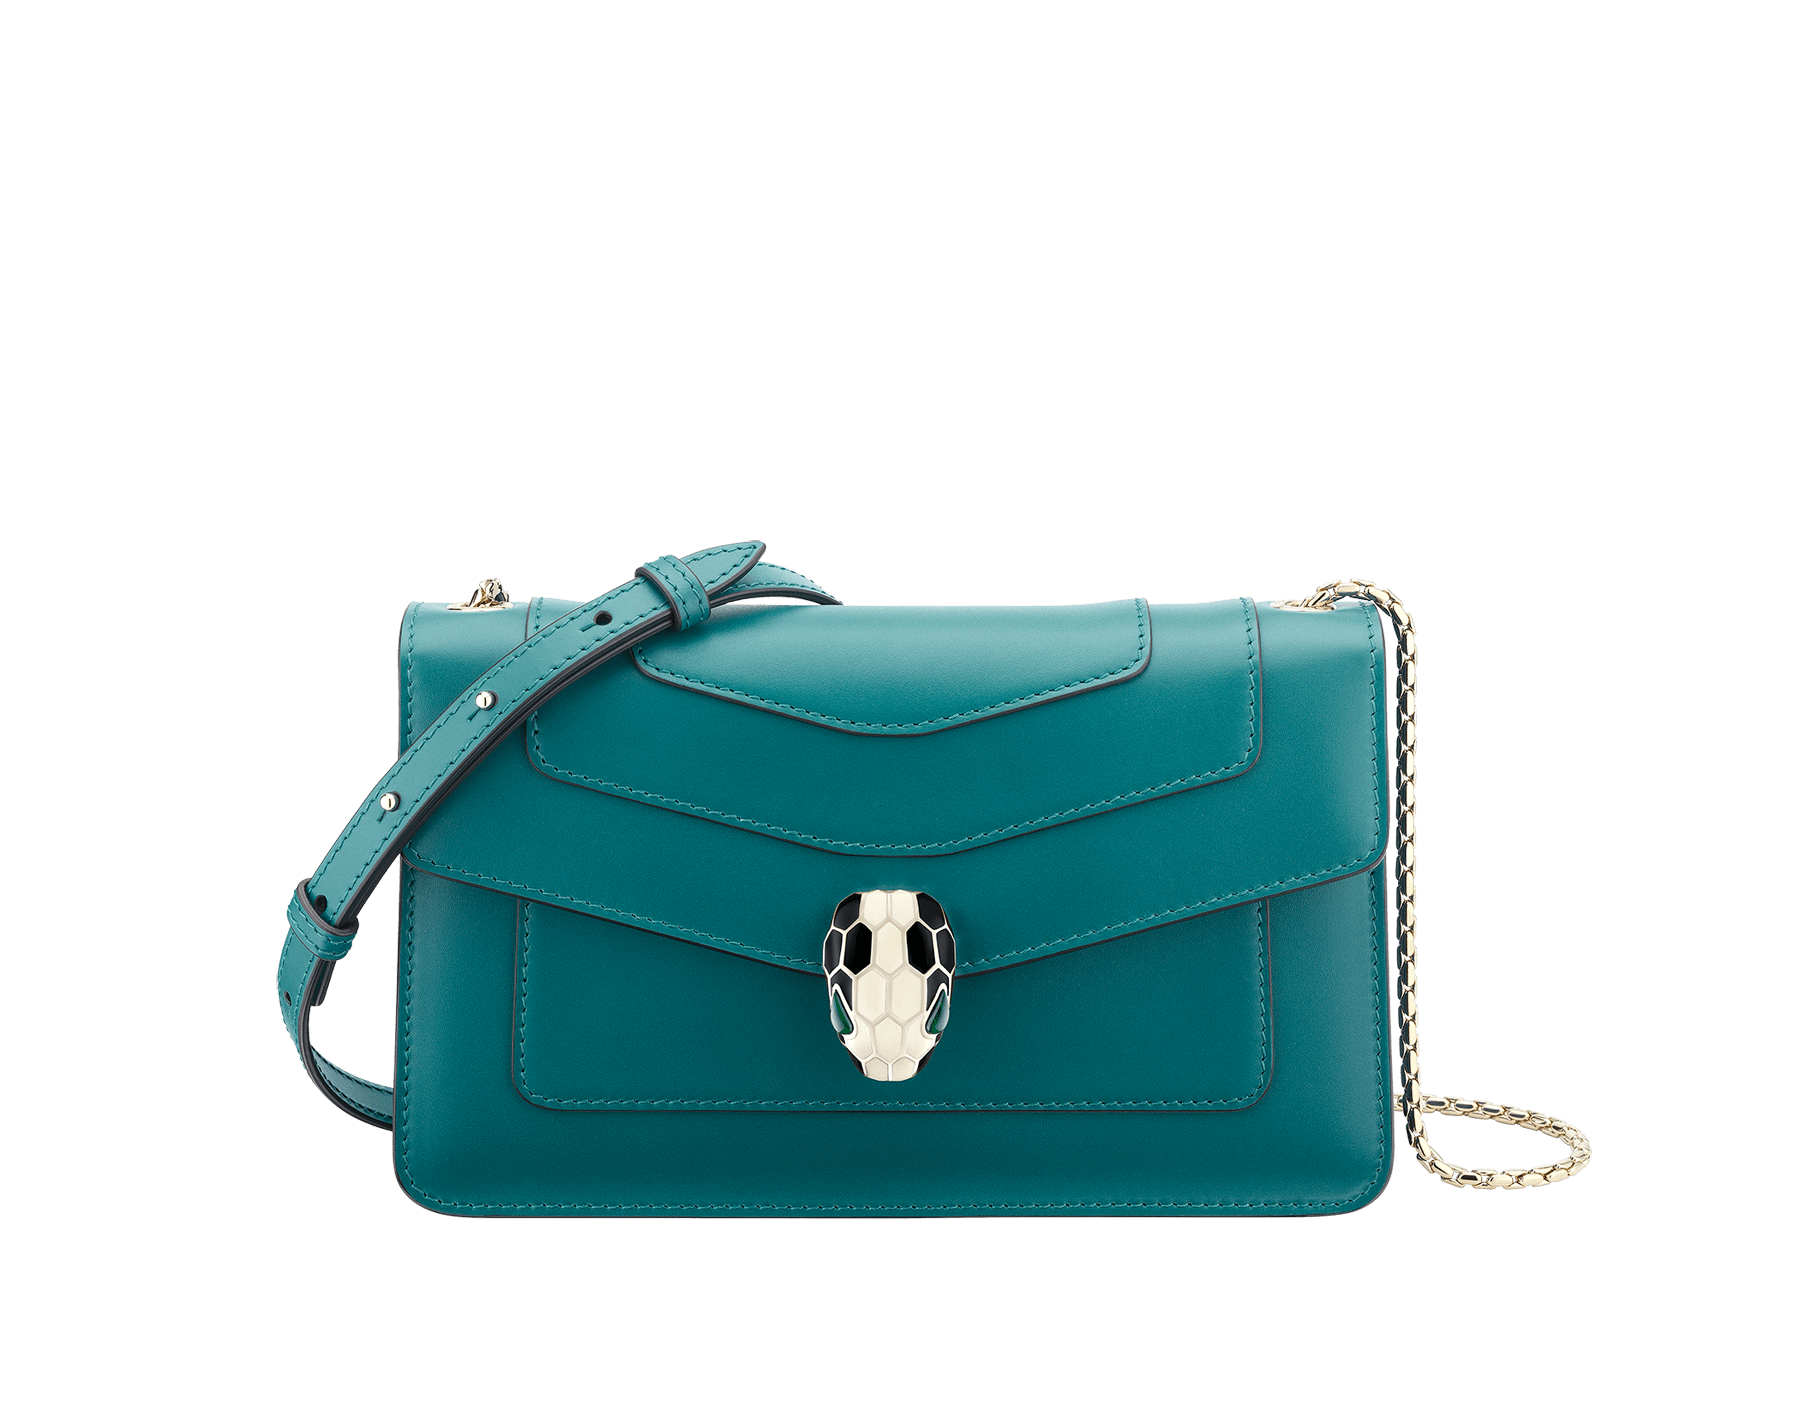 Serpenti Forever crossbody bag in sea star coral smooth calf leather. Snakehead closure in light gold plated brass decorated with black and white enamel, and green malachite eyes. 625-BCLc image 1